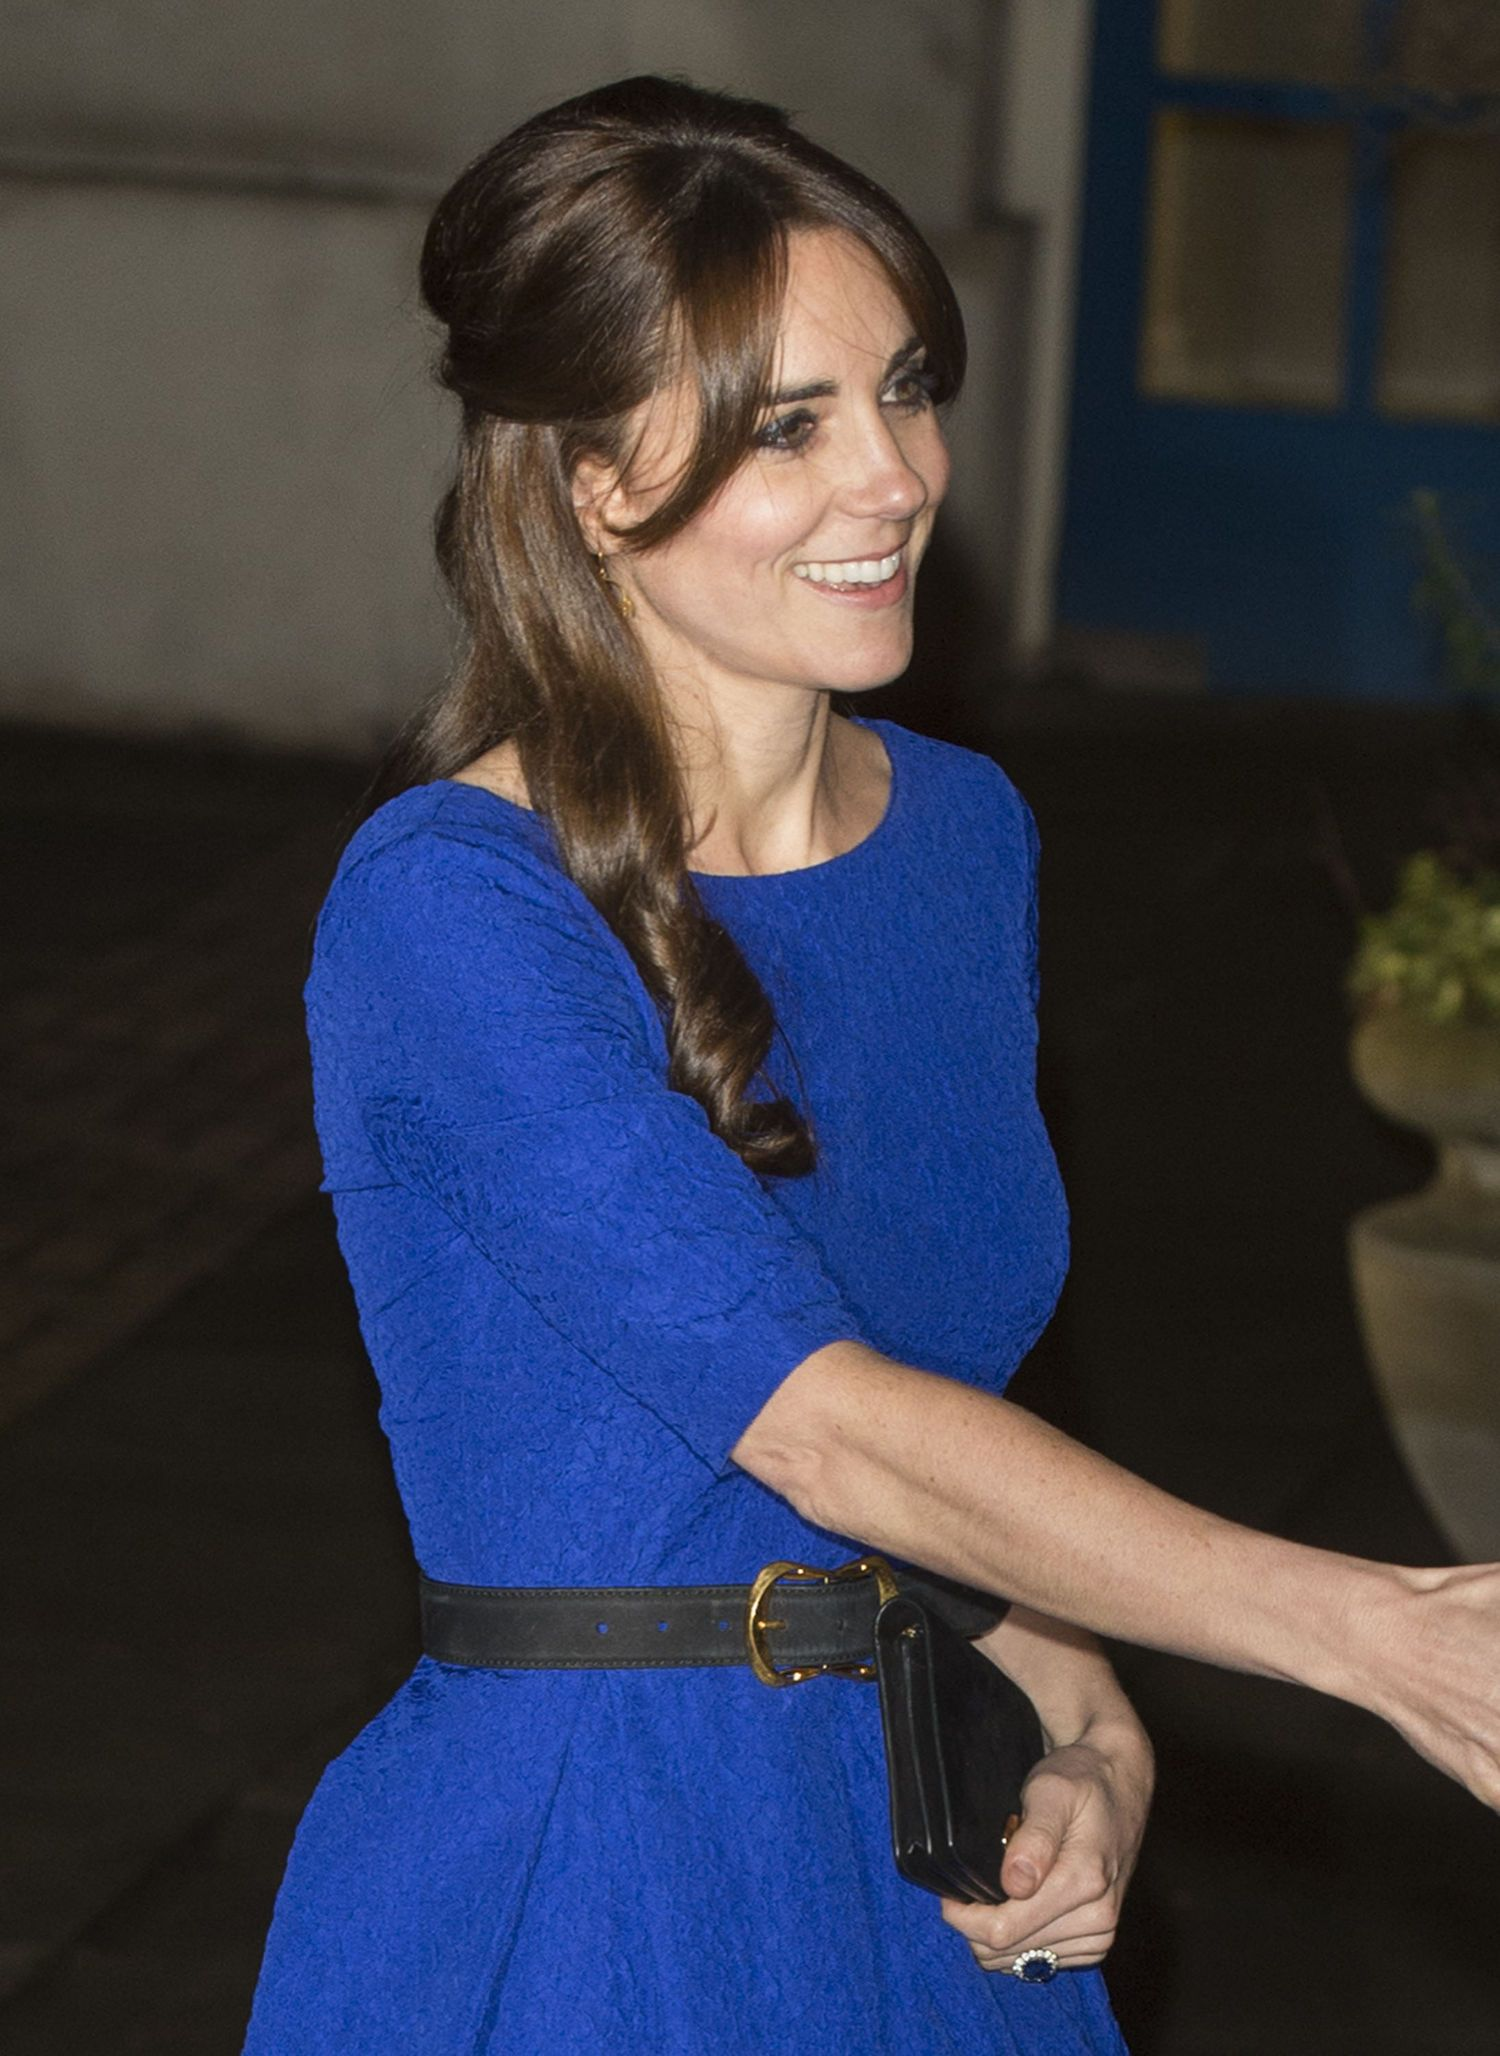 Kate Middleton's Saloni Blue Dress Isn't Sold Out Yet! Here's Where You Can Still Buy It #Intense #Mega #Chandeliers